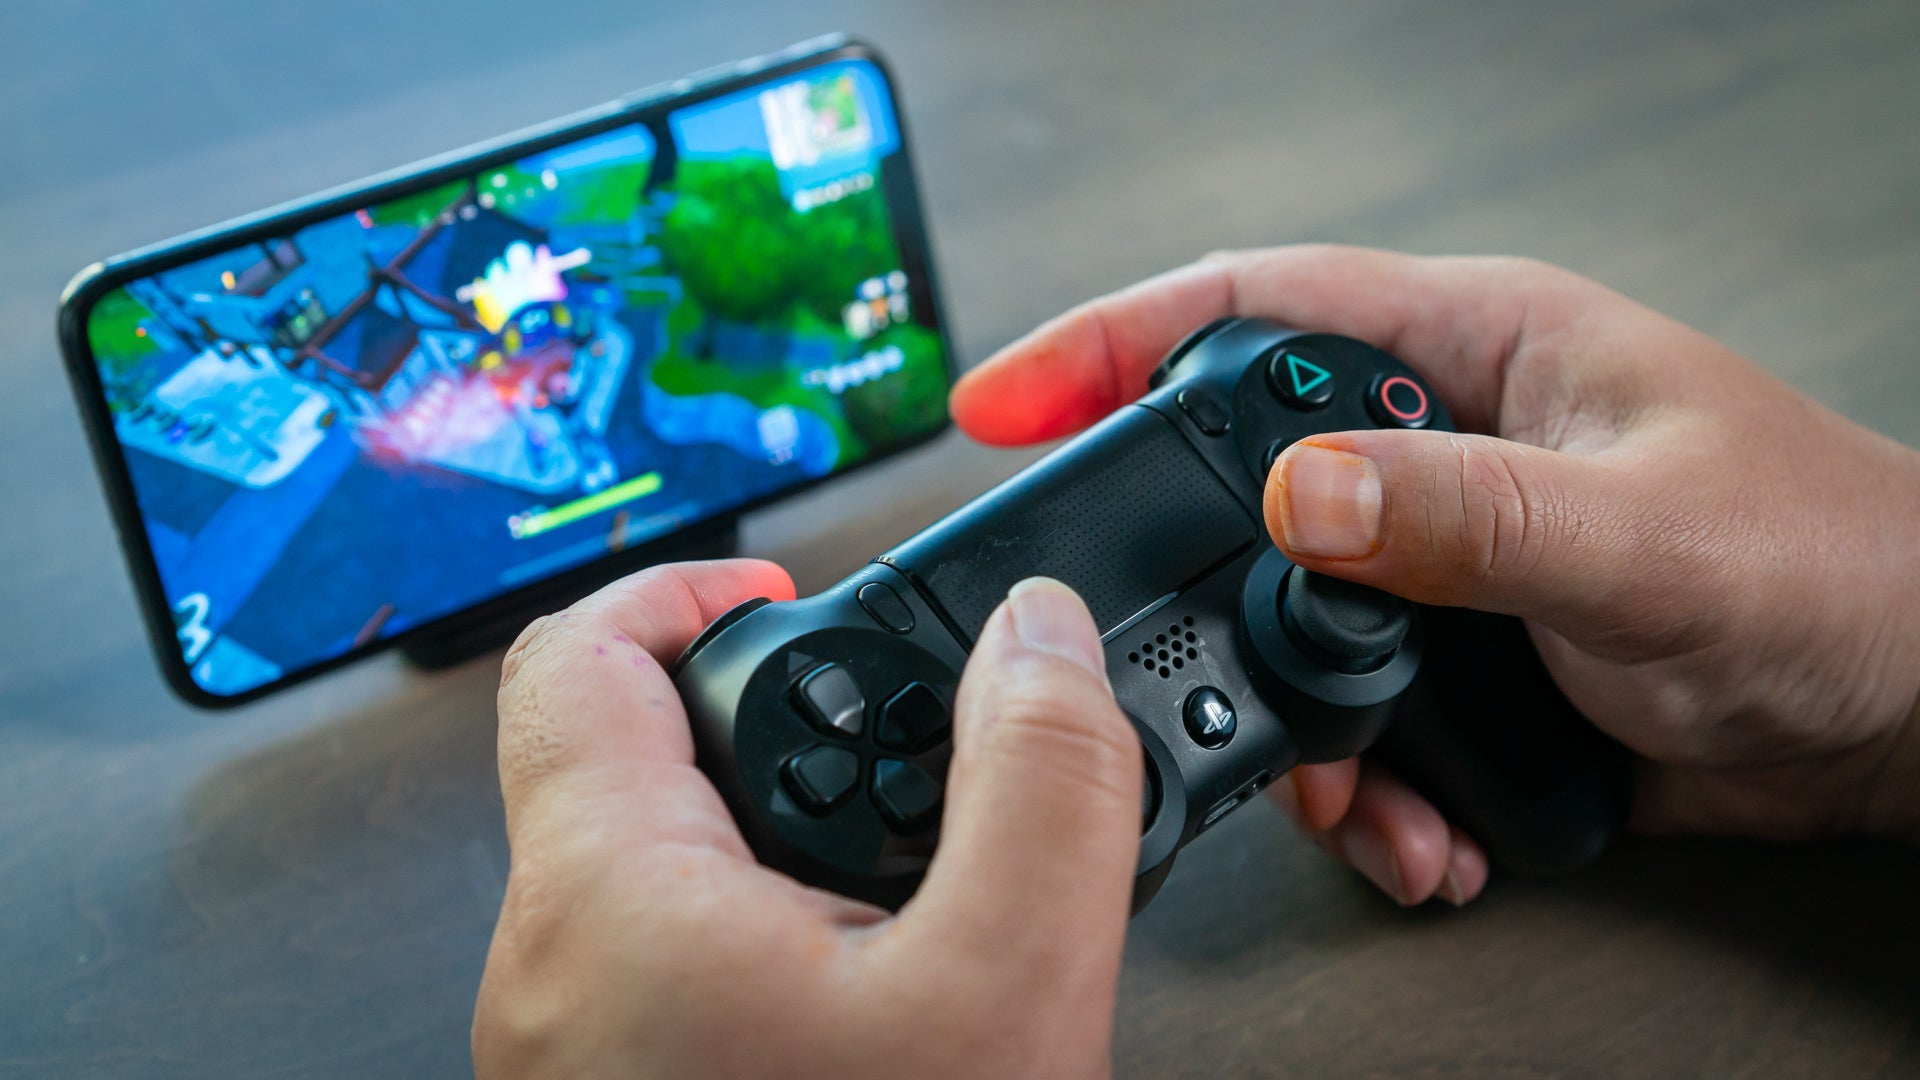 How to pair a PS4 DualShock 4 controller with an iPhone or iPad